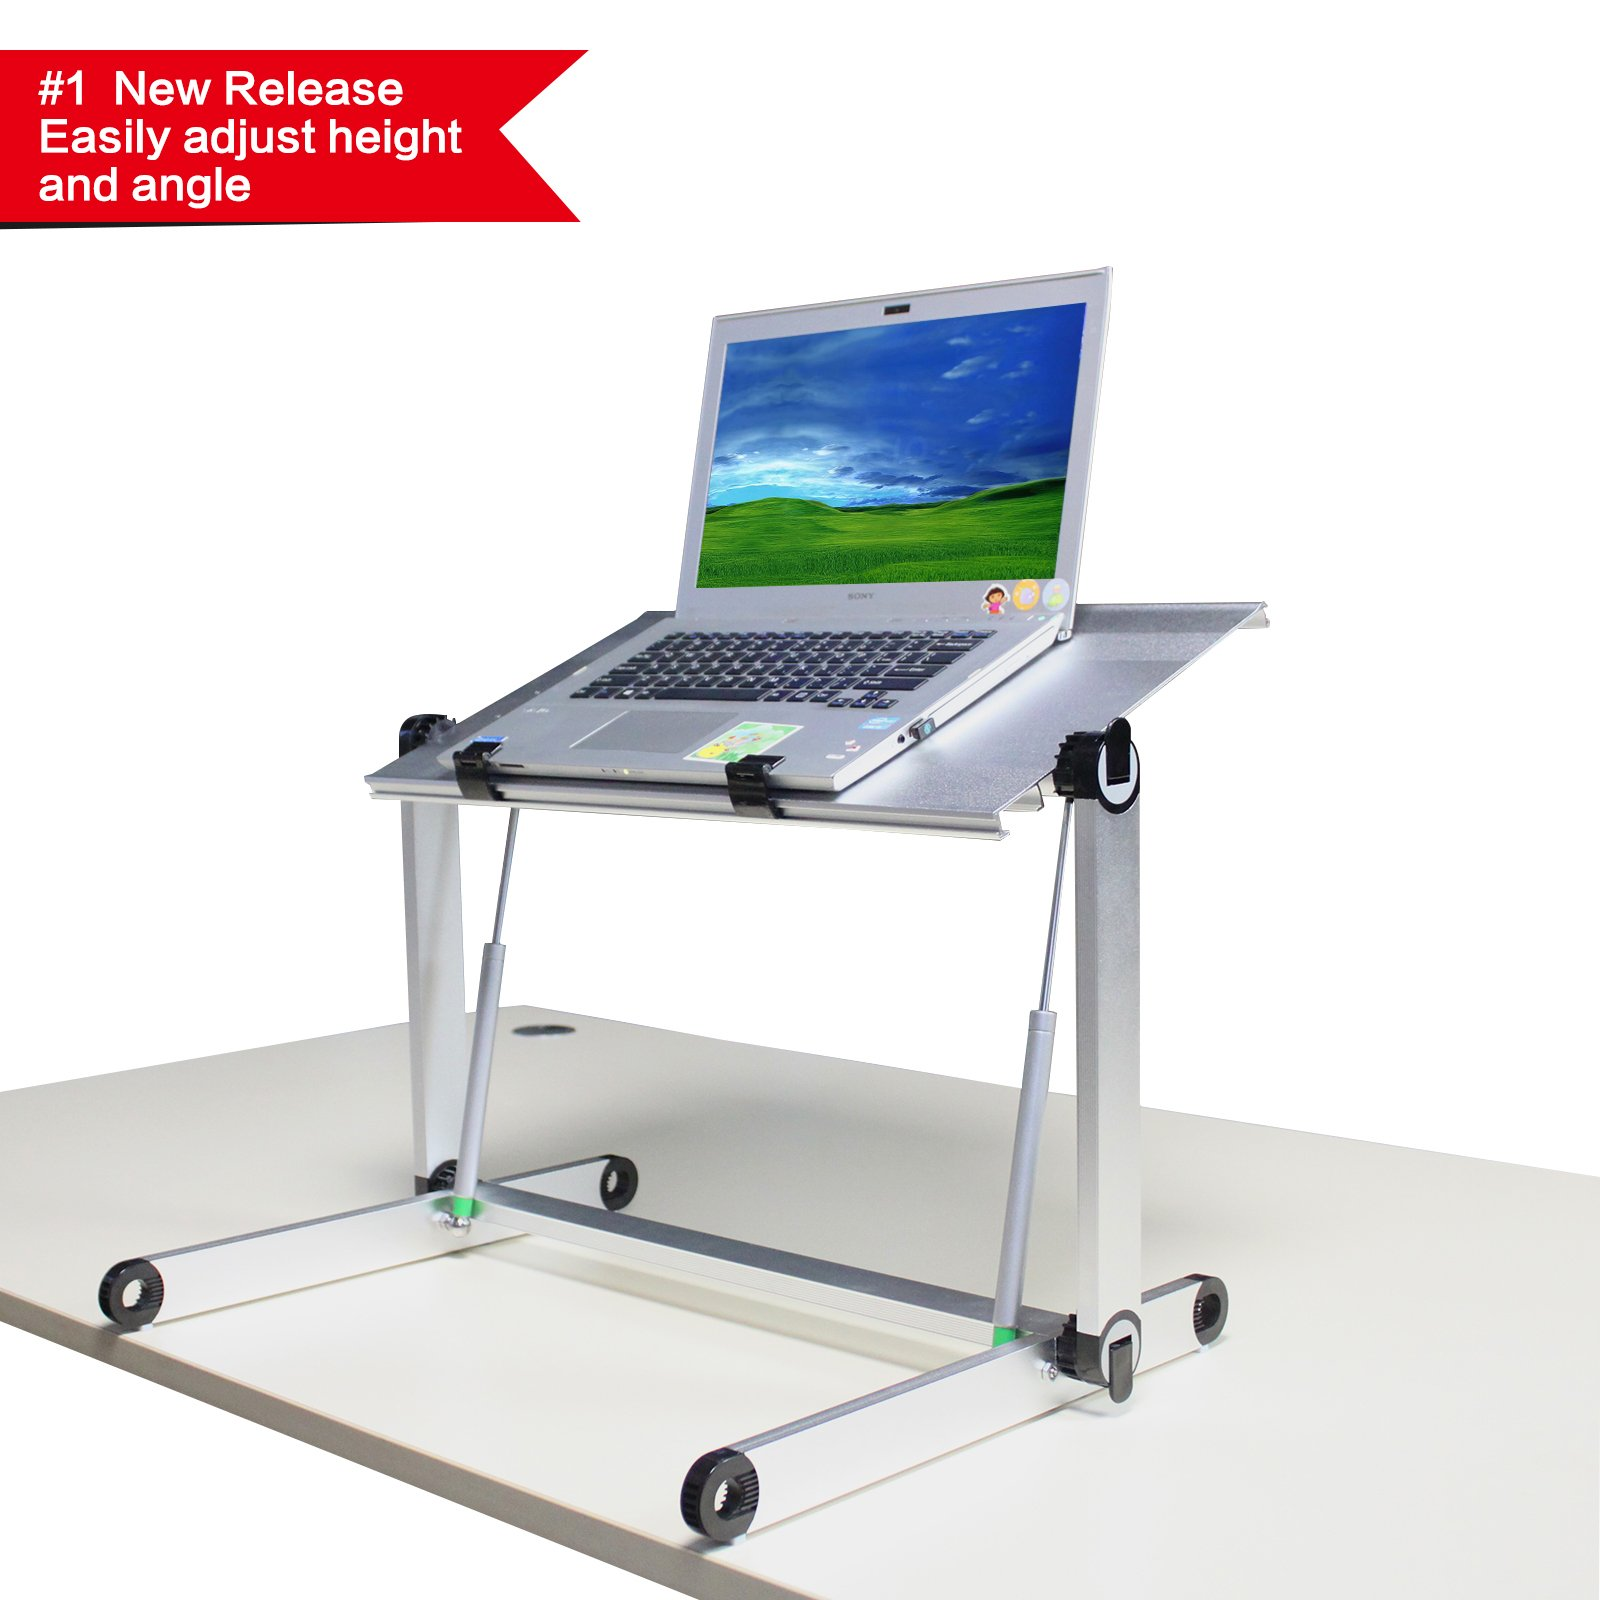 Rxmoo Standing Sitting Table Adjustable Height Sit Stand Desk/Table Computer Folding Desk Laptop desk/Table (Silver)